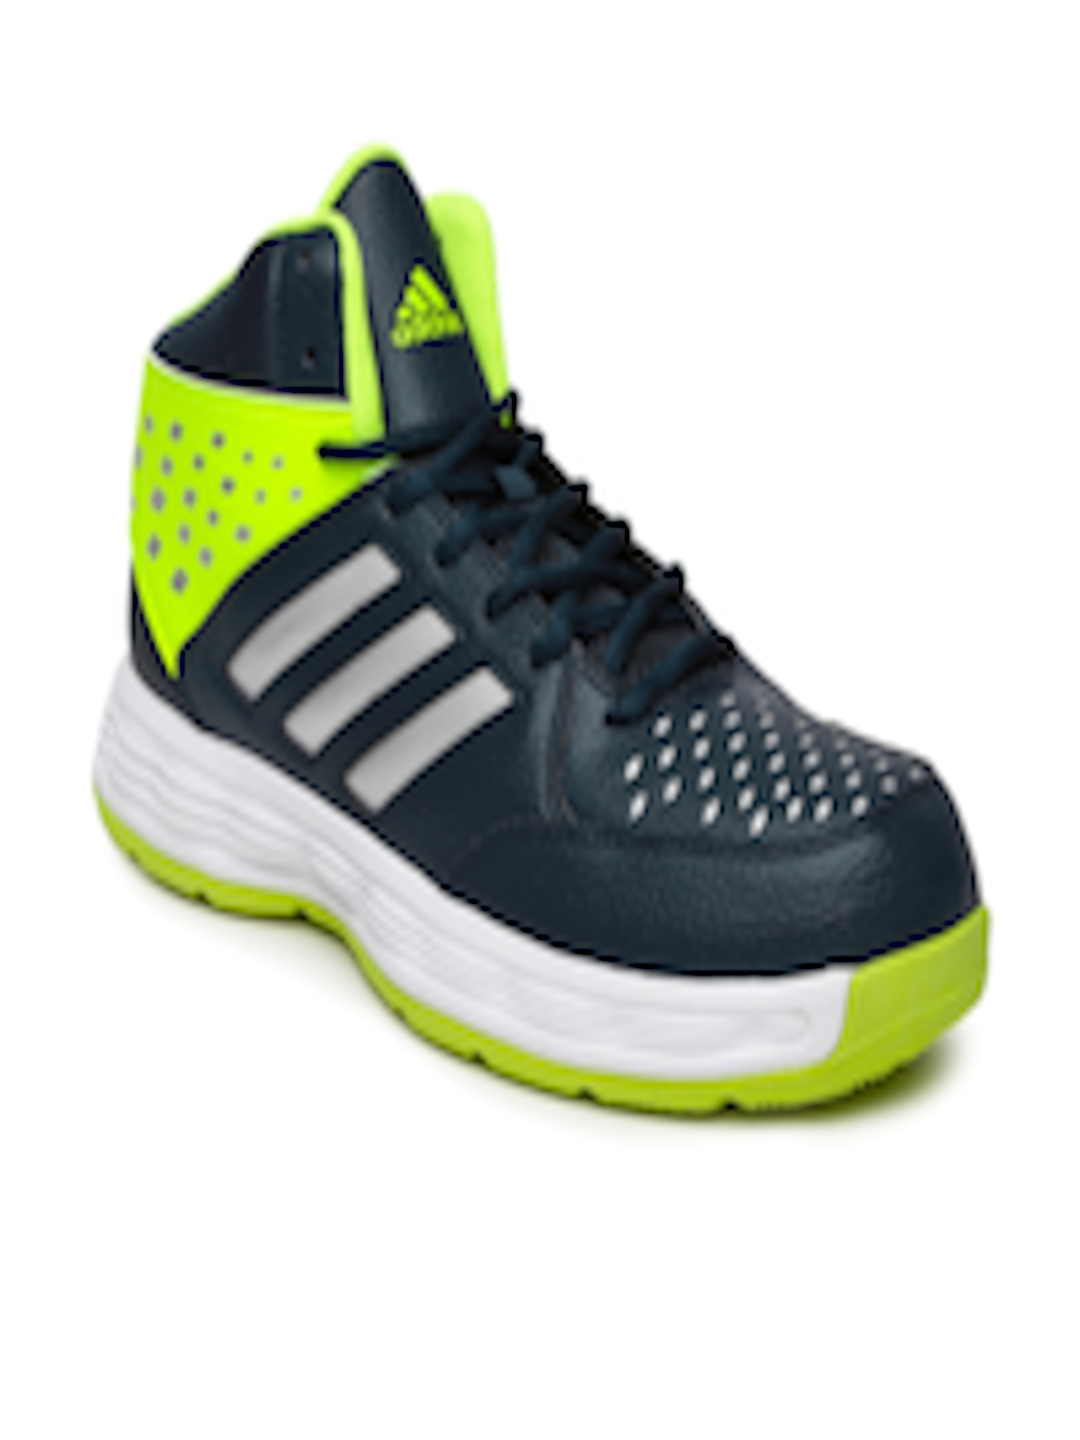 402e07a3acb Buy ADIDAS Men Navy And Fluorescent Green Mid Top Basecut 16 Basketball  Shoes - Sports Shoes for Men 1525136